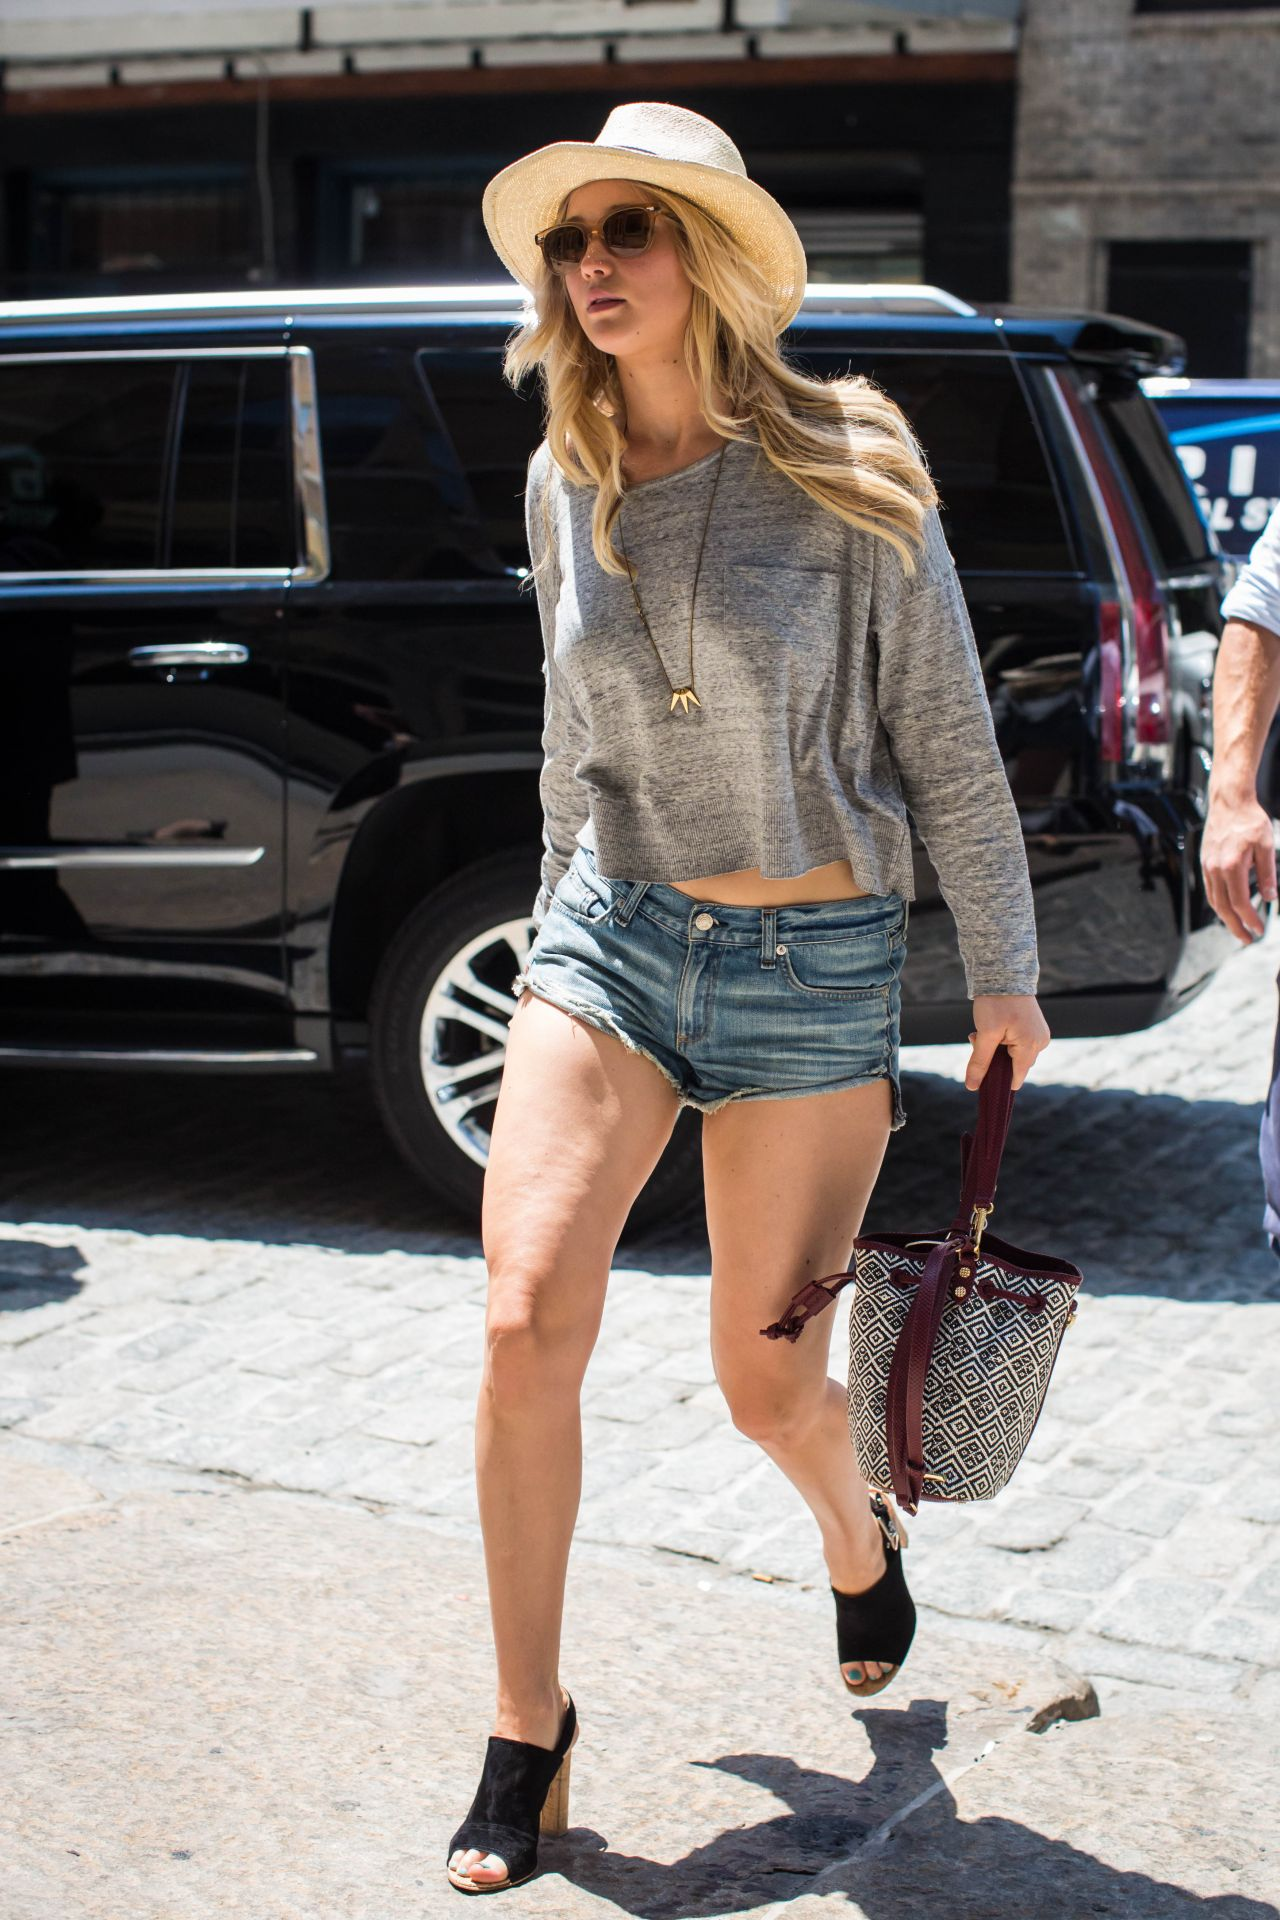 jennifer lawrence leggy in jeans shorts out in new york